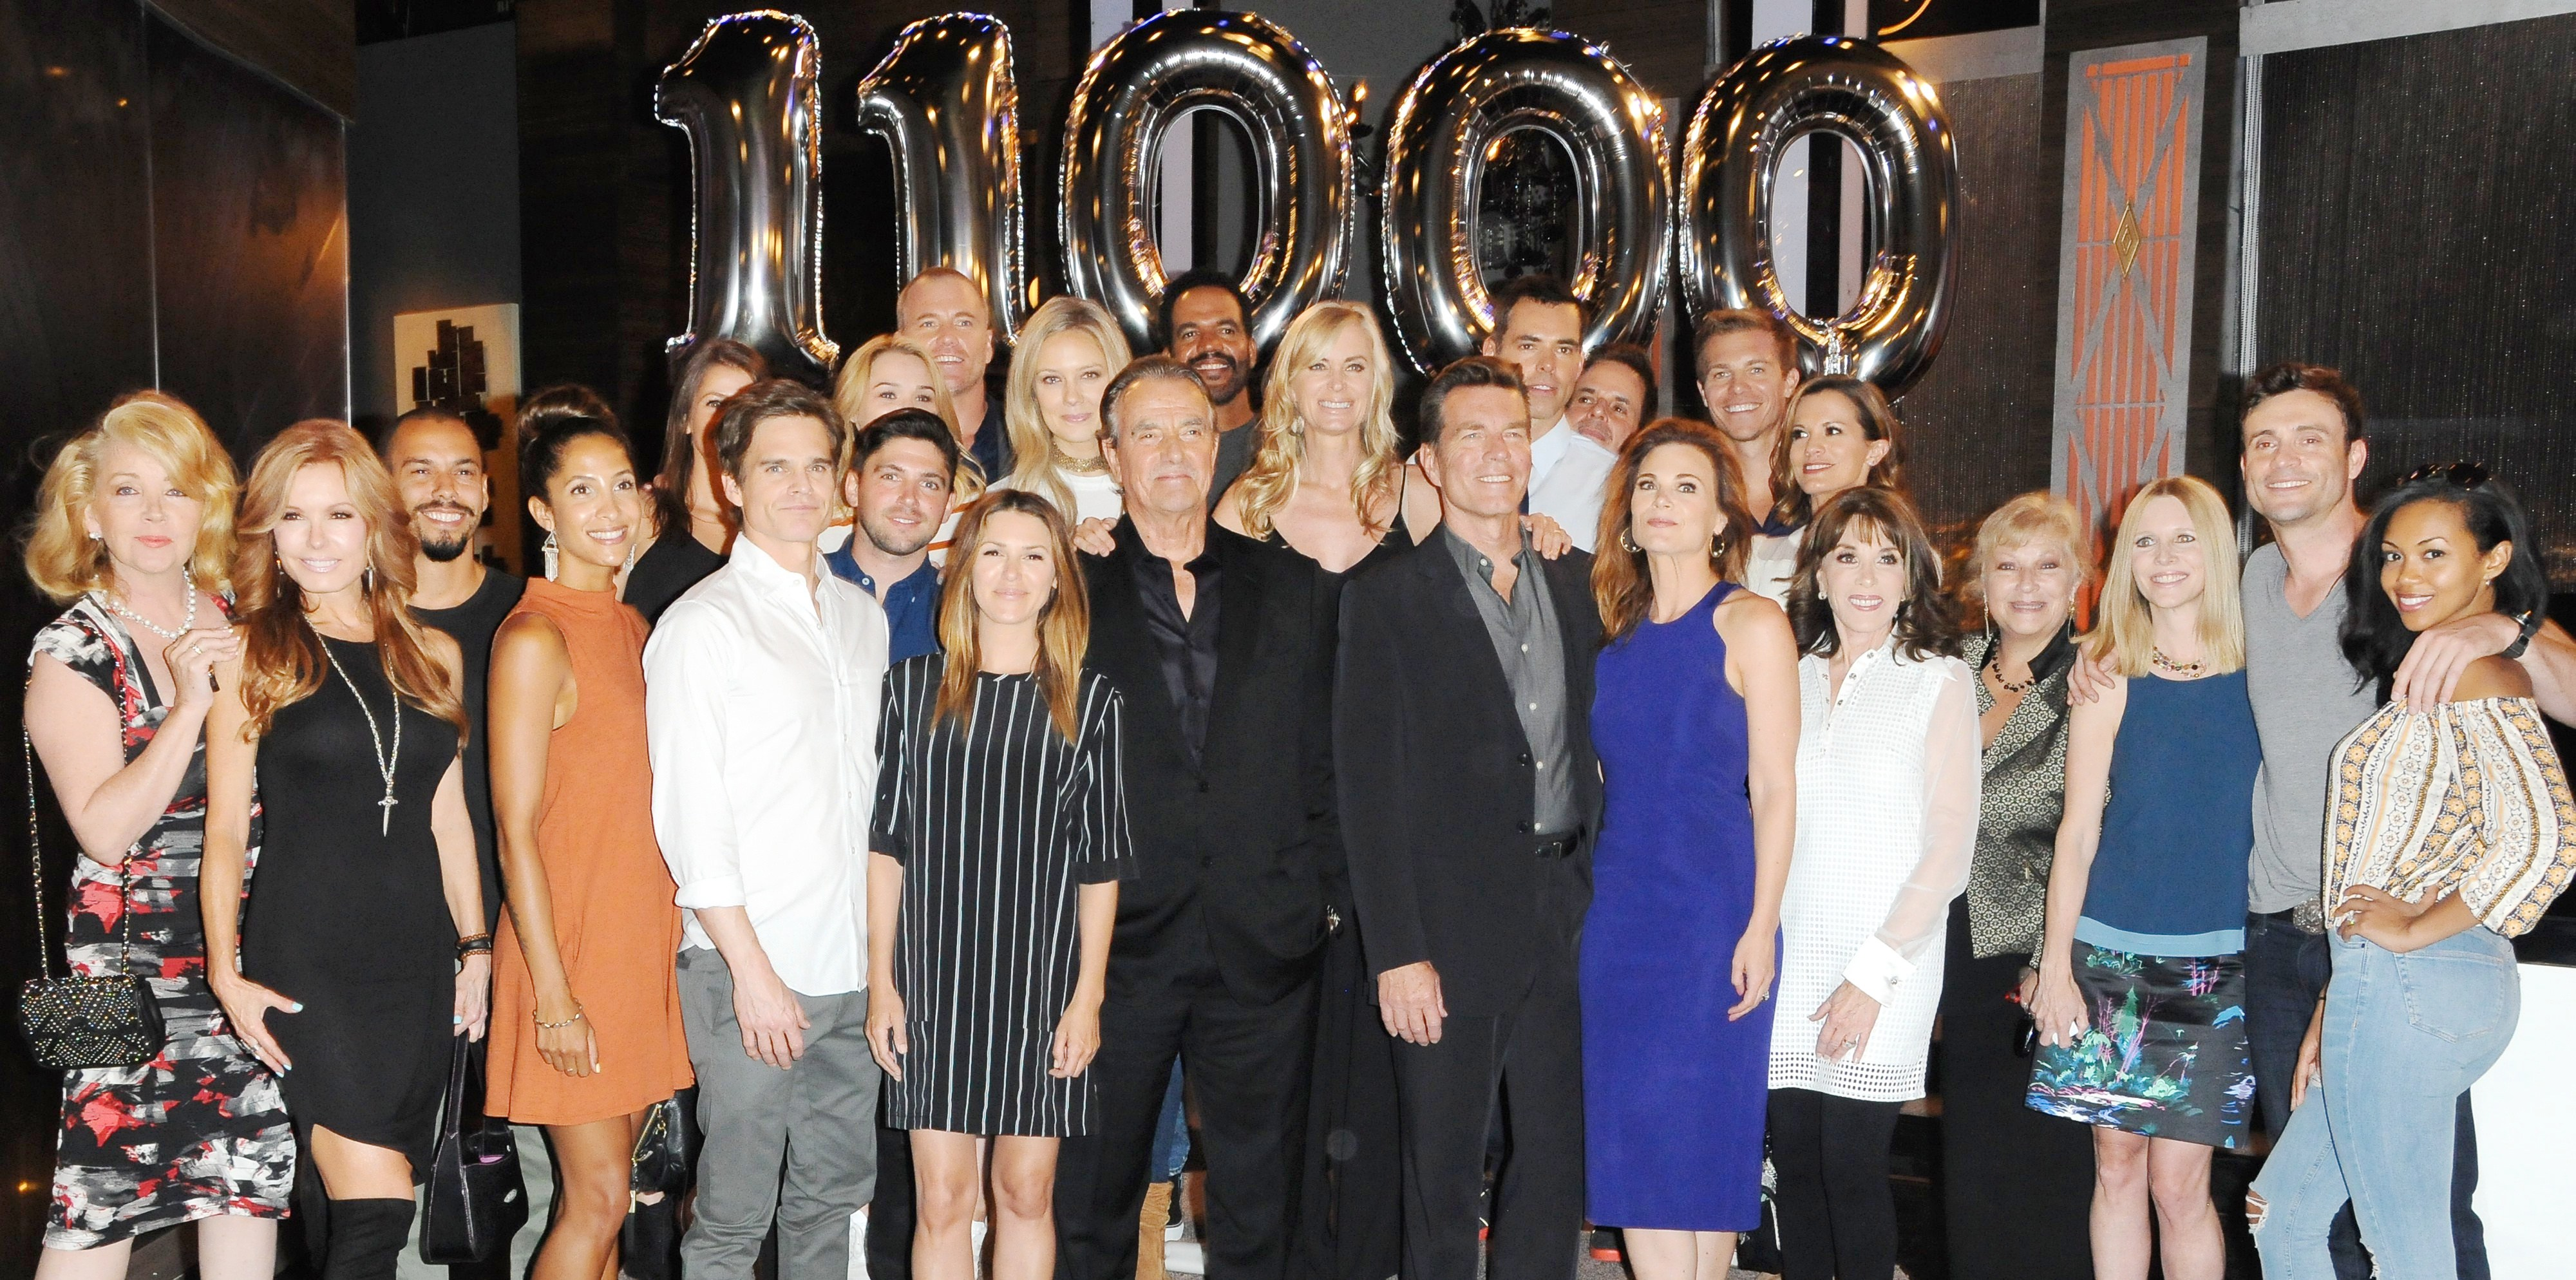 The Young and the Restless Cast THE YOUNG AND THE RESTLESS Celebrate Their 11,000th Episode Stage 41 CBS-Television City Los Angeles, CA 9/8/16  © Jill Johnson/jpistudios.com 310-657-9661